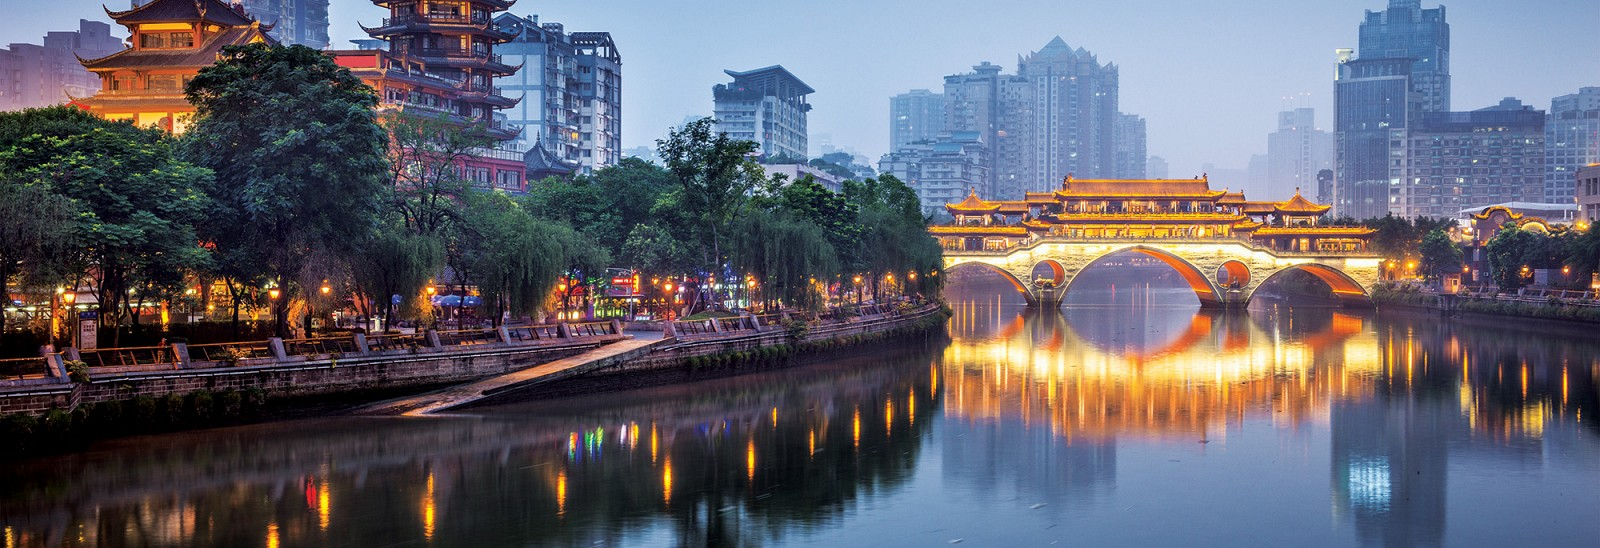 Sichuan serenity: a journey through Chengdu